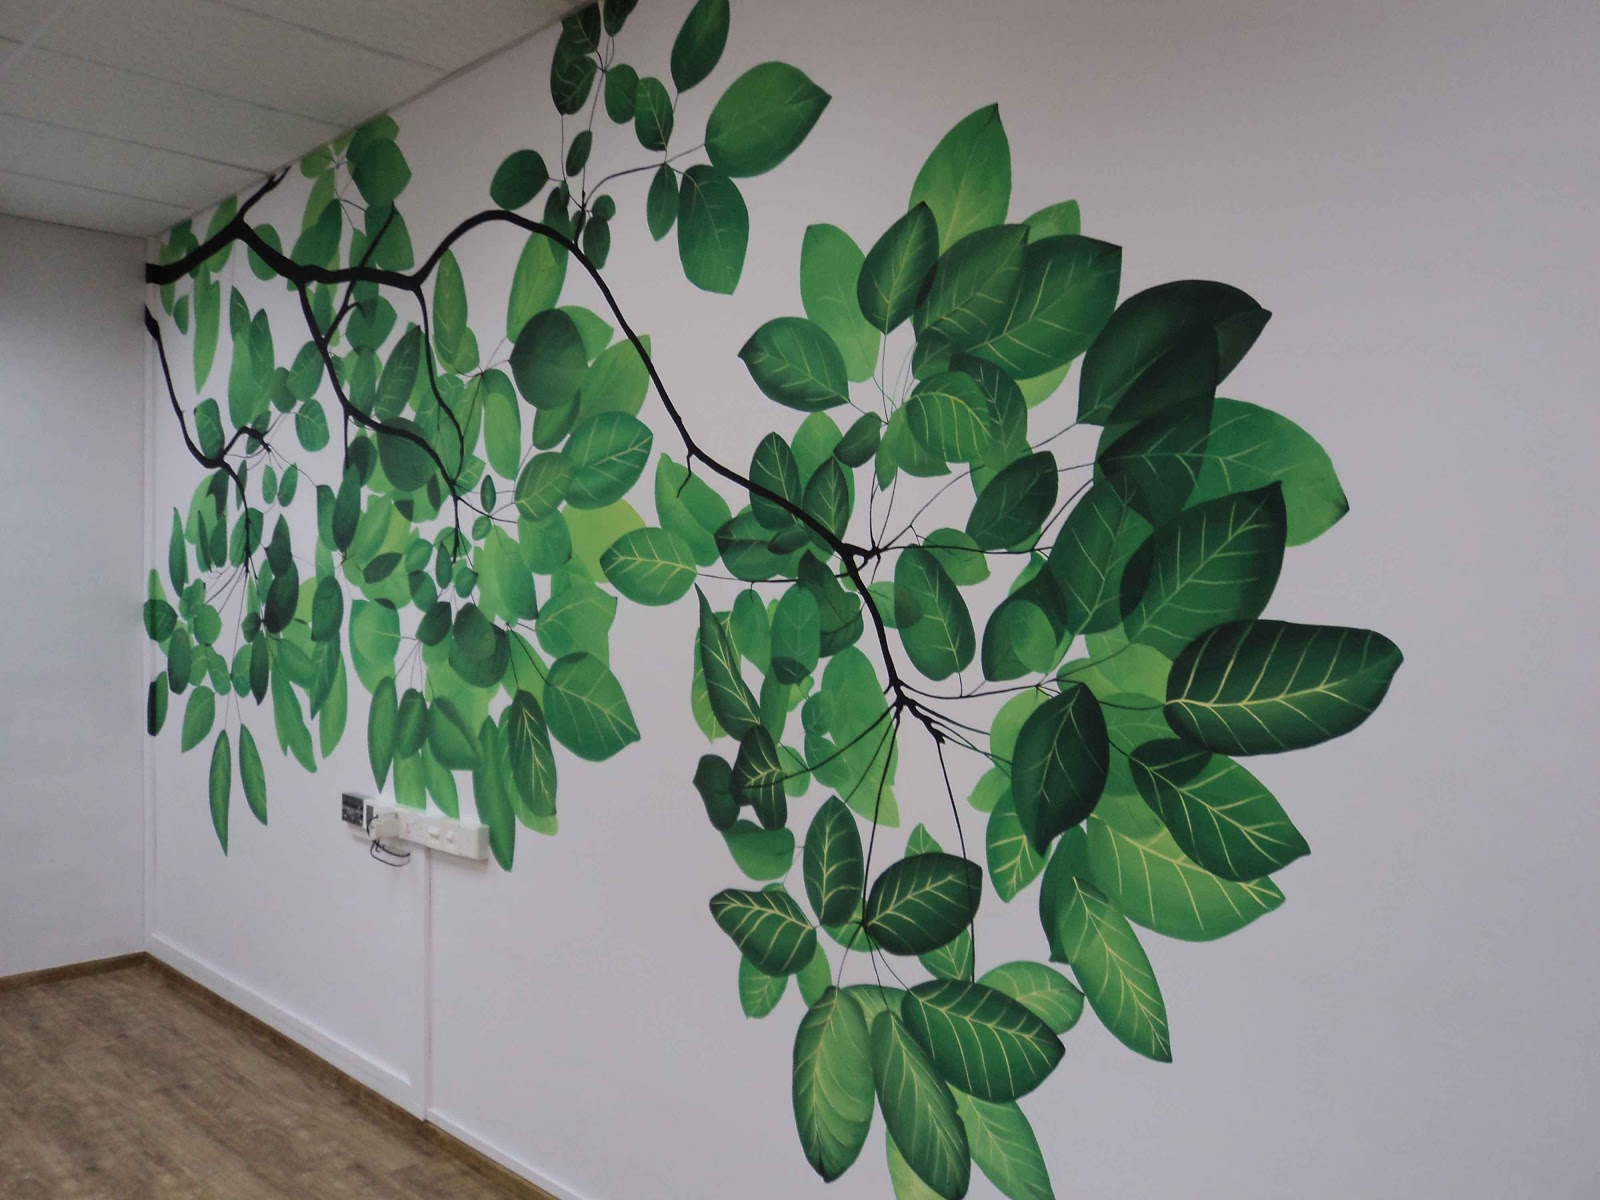 Livingwithart Singapore Creates Mural Art That Transforms The Environment.  Each Leaf Is Carefully Painted With Attention Paid To Details. Wall Art  Mural ... Part 81